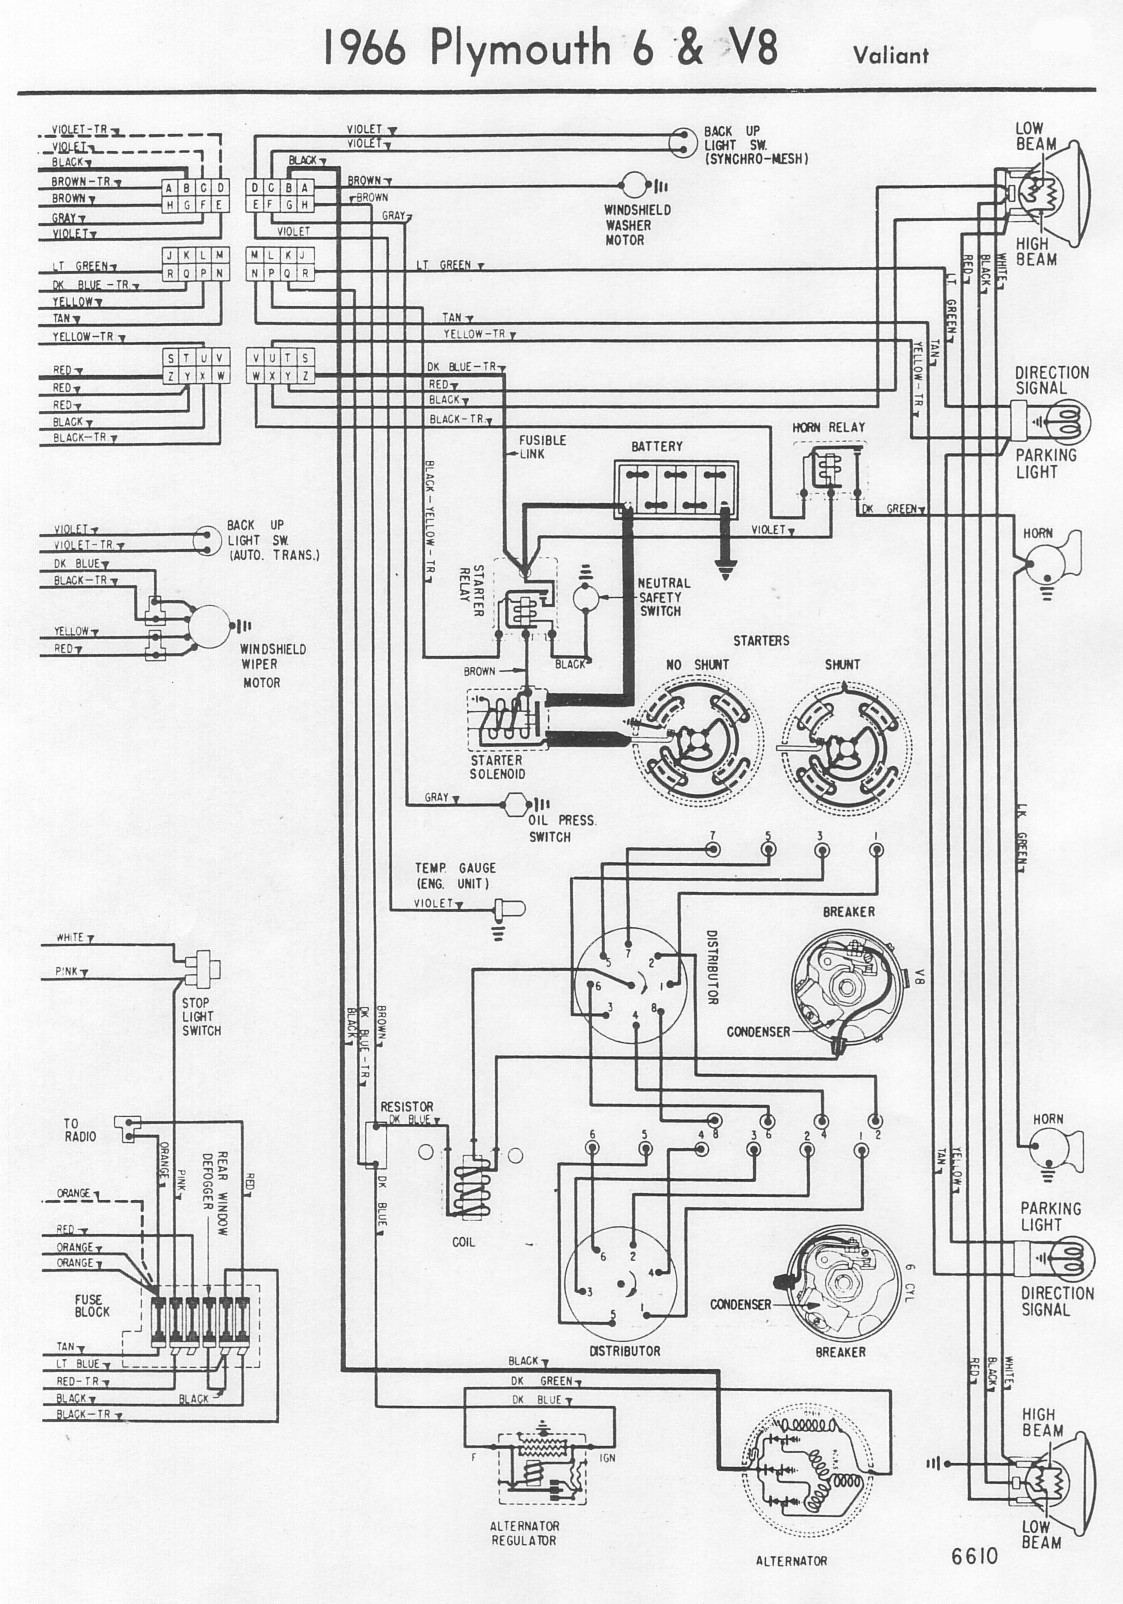 1971 Cuda Wiring Diagram Auto Wiring Diagram Today \u2022 1971 Ford F100 Wiring  Diagram 1971 Ford Galaxy Wiring Diagram